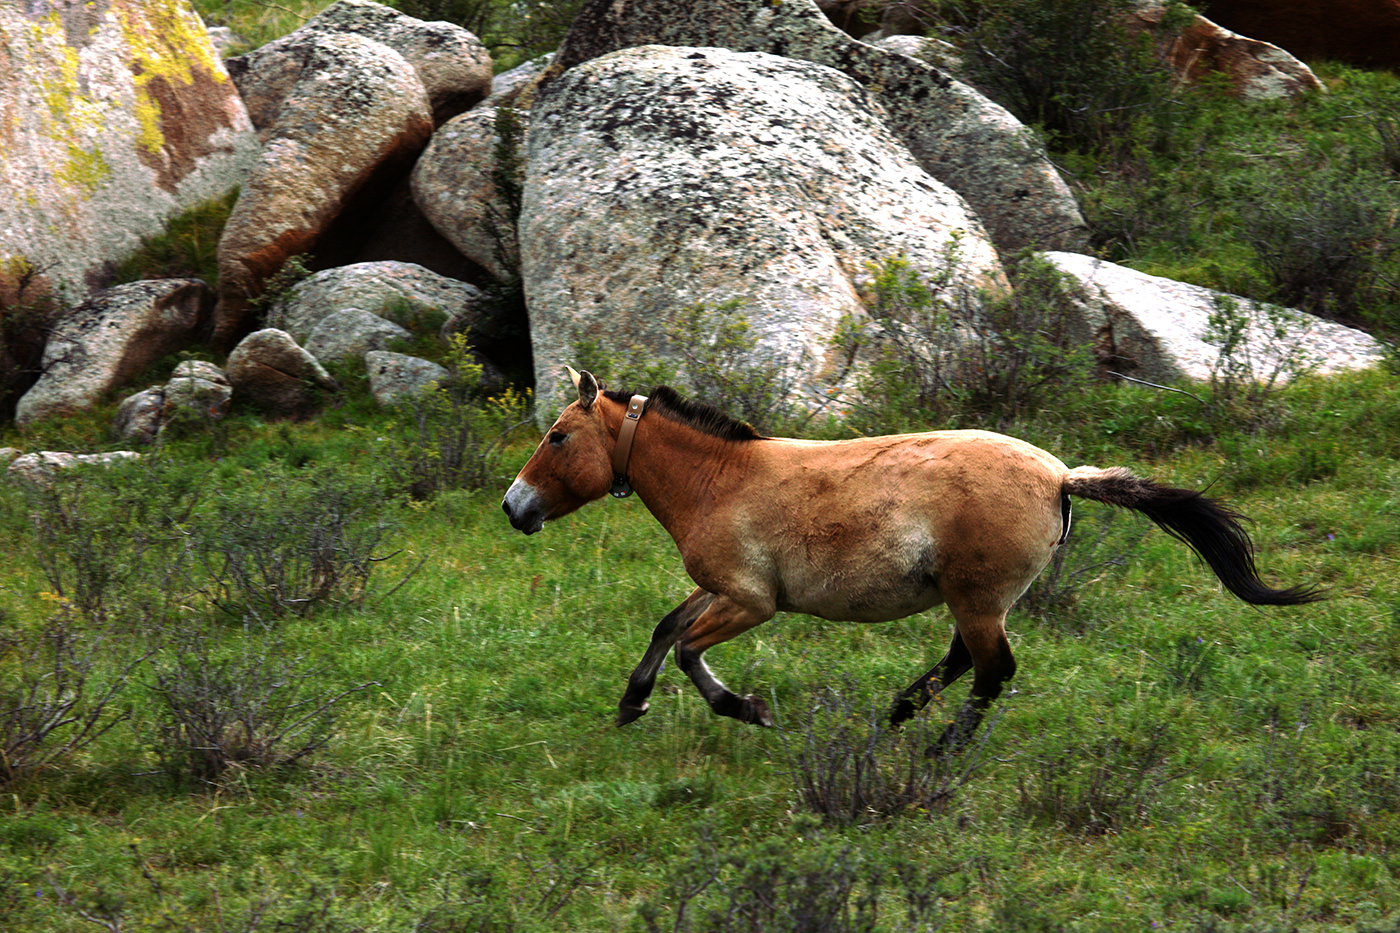 A Przewalski's horse, also called takhi, with a GPS collar running through the grass at Hustai National Park, Mongolia